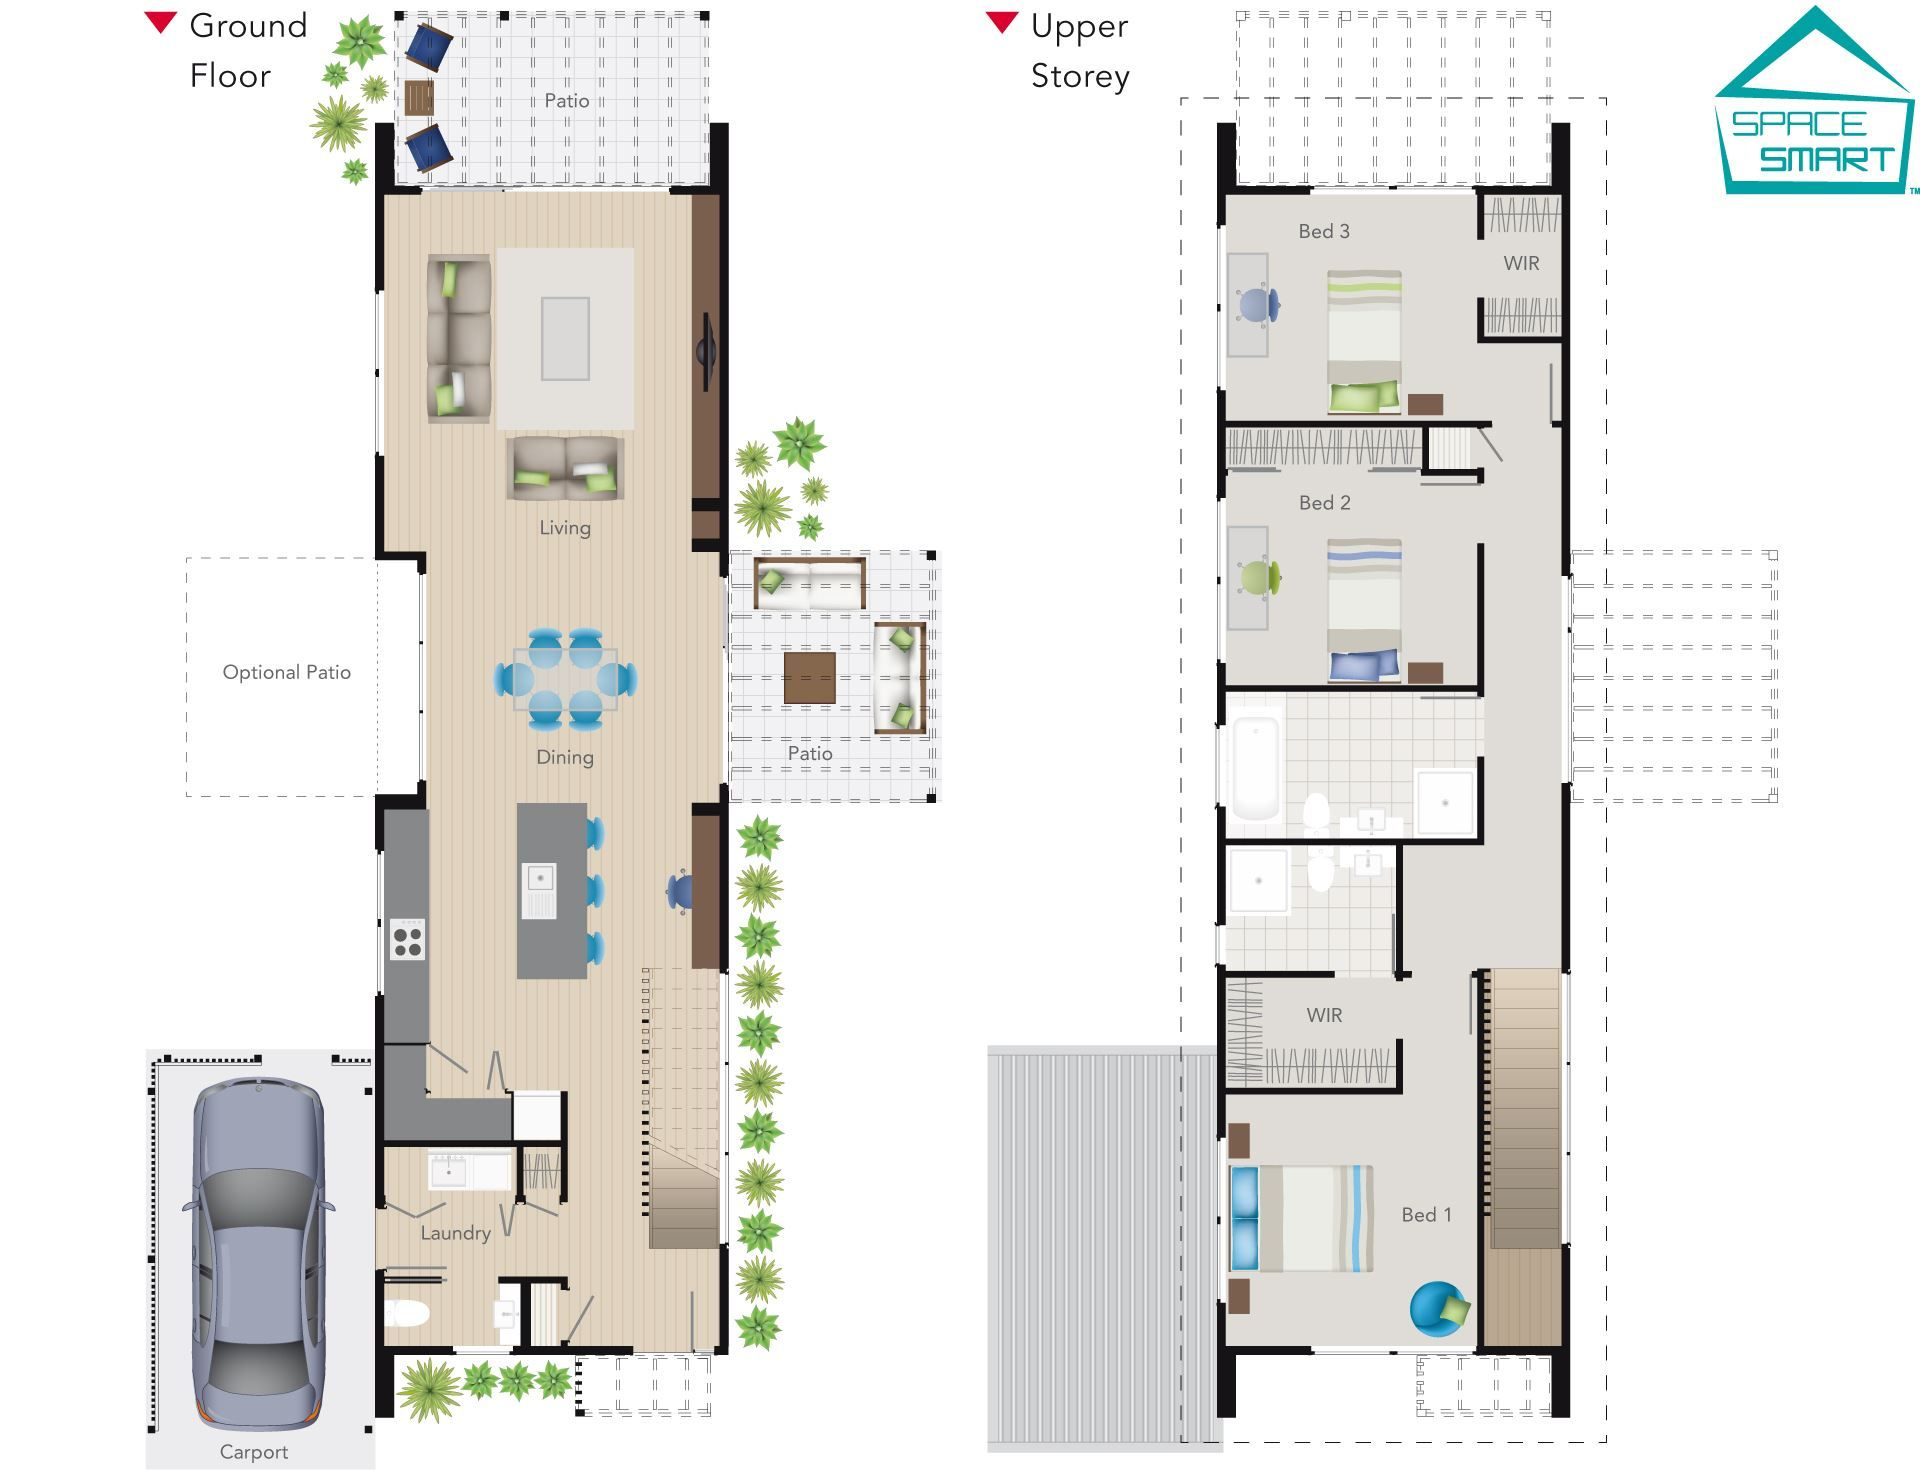 The Perfect House Plan a narrow two story space smart house plan. perfect for modern